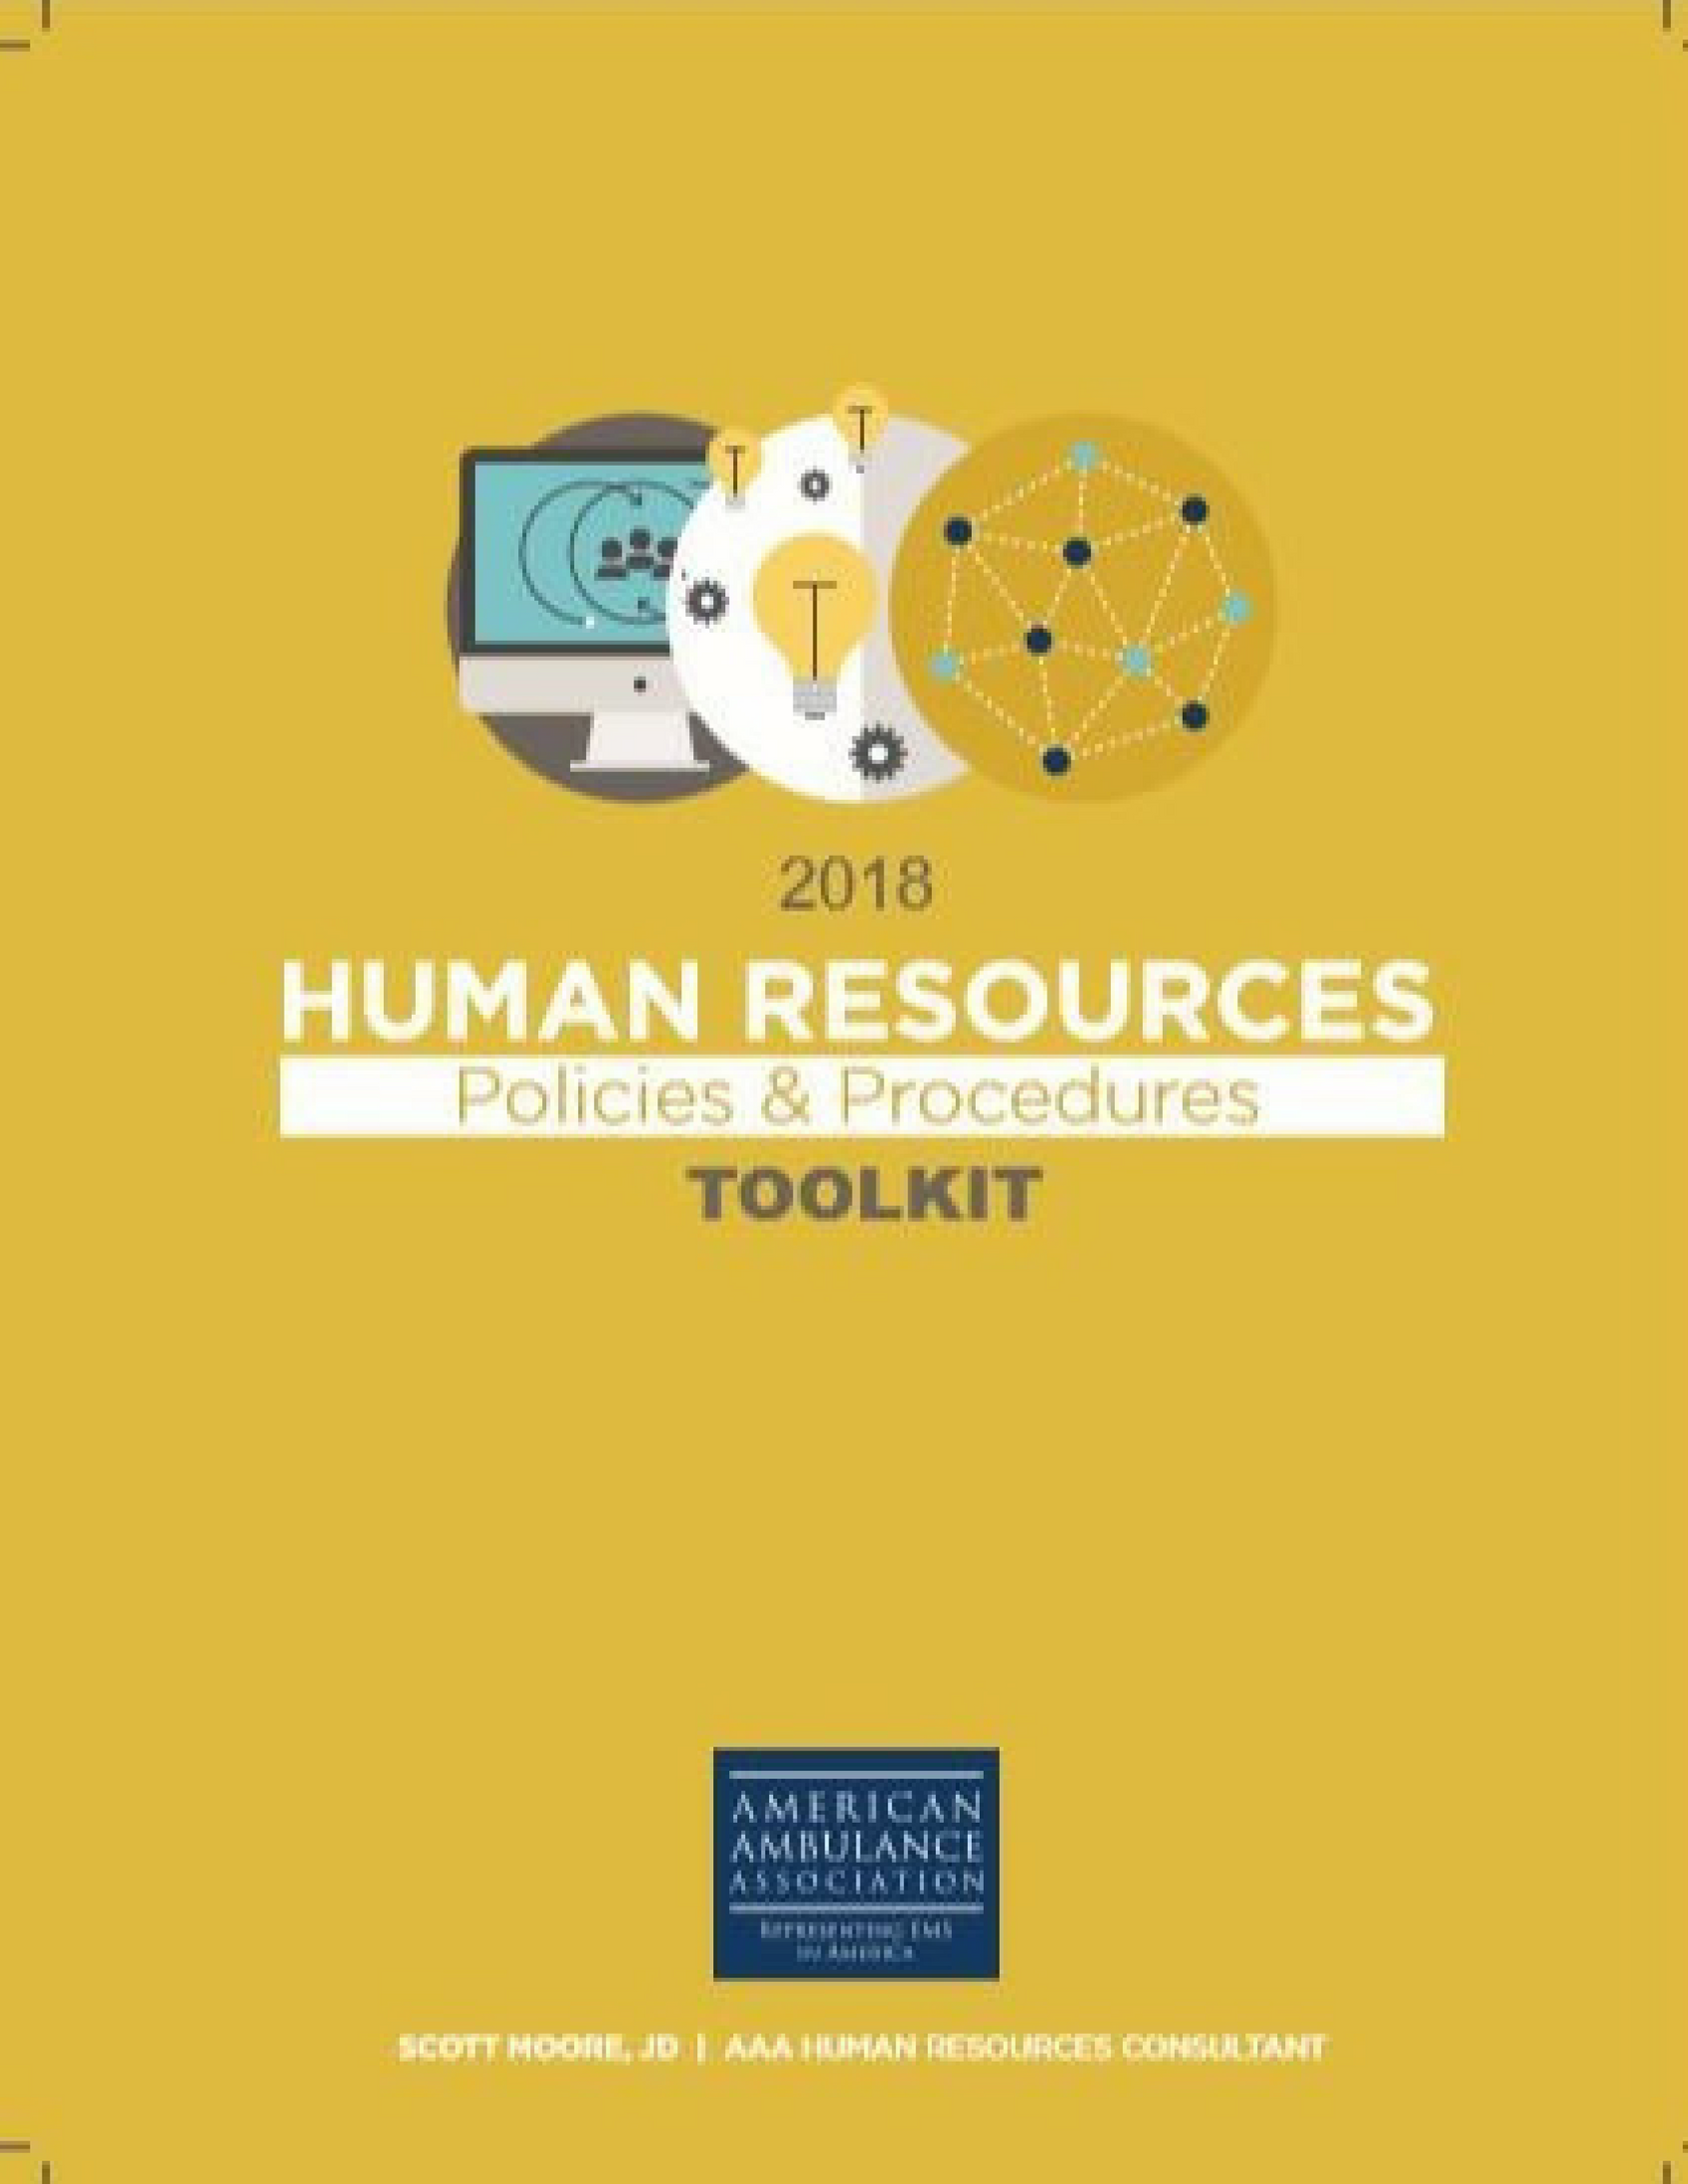 Human Resources Toolkit Forms